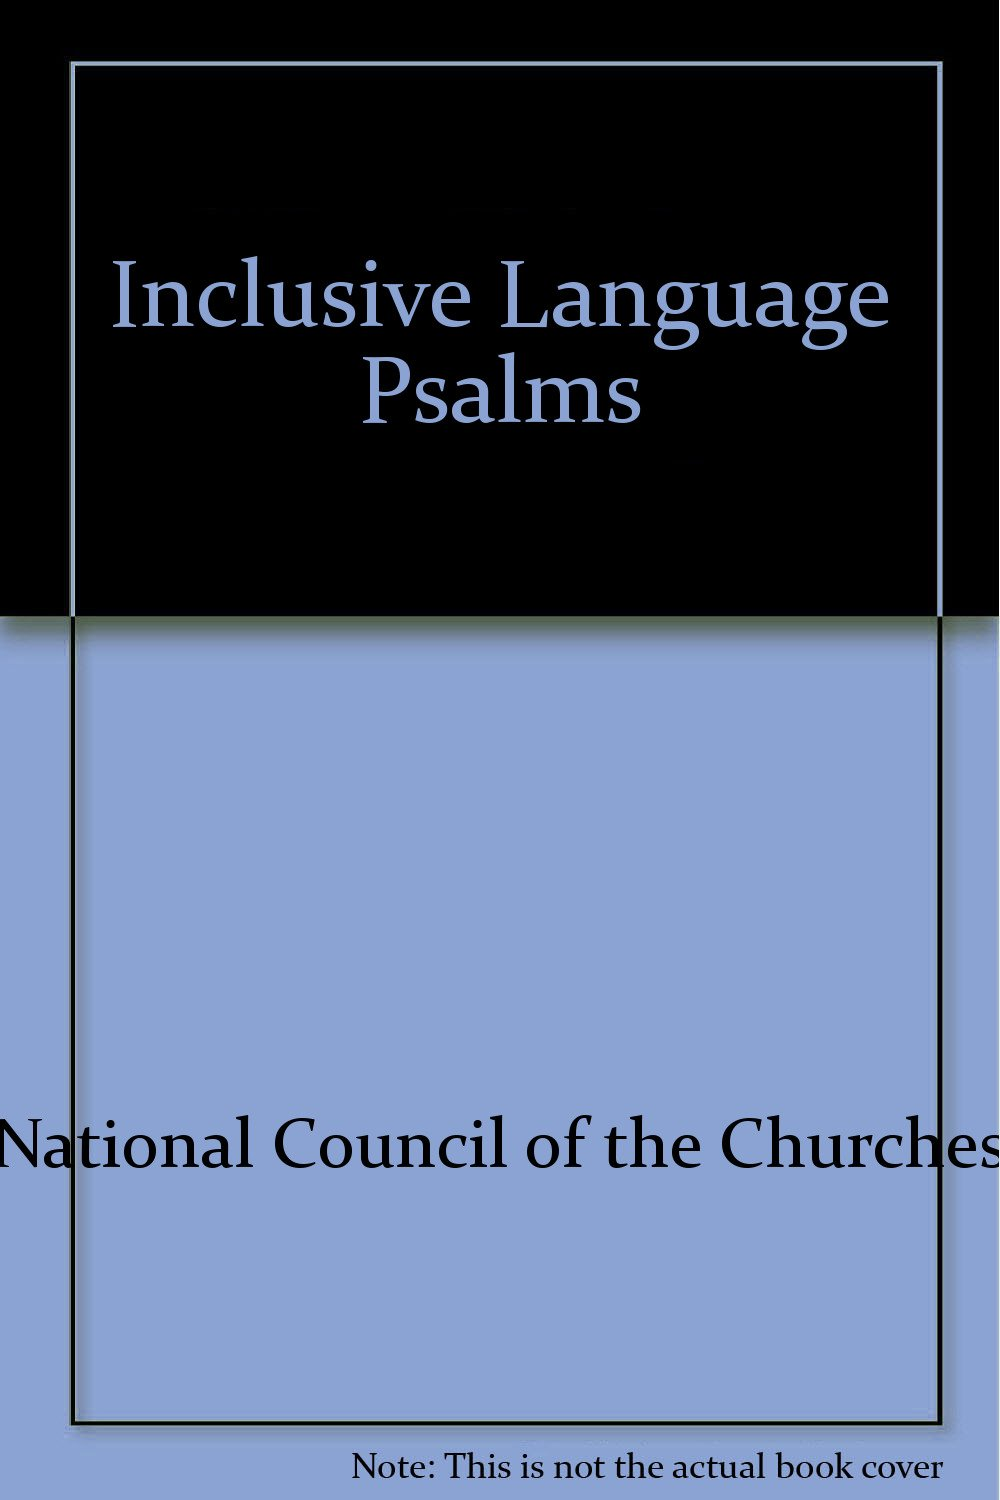 Inclusive-Language Psalms (Readings for Years A, B & C) by The Pilgrim Press